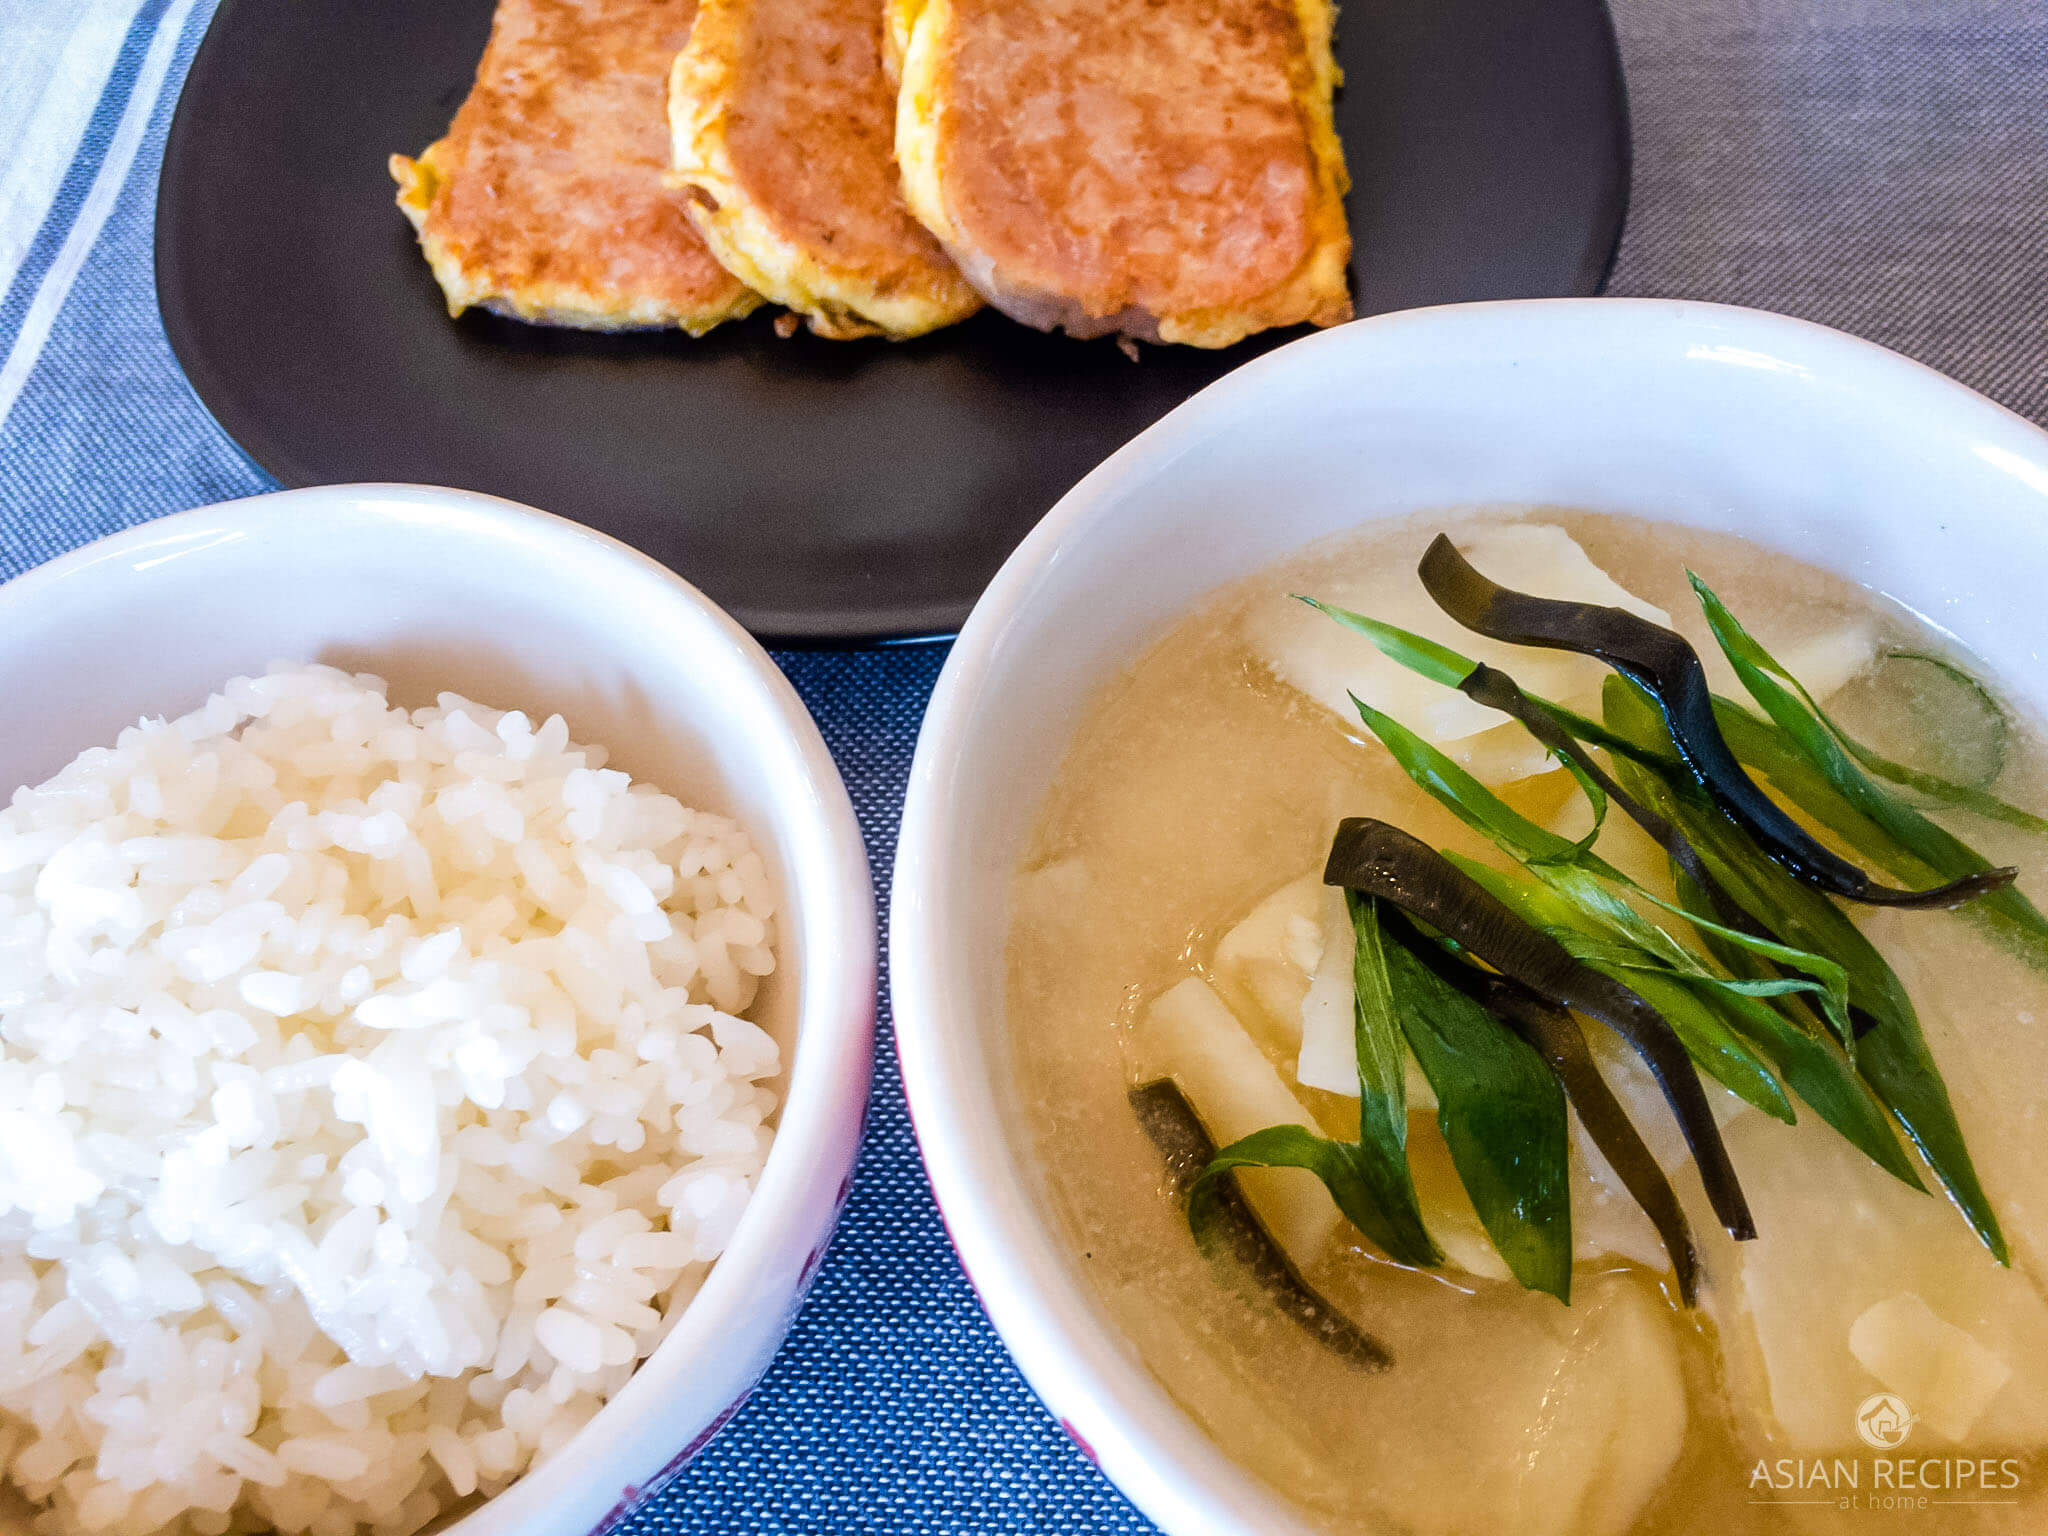 This Korean potato soup (gamjaguk) is mild and full of umami flavor. It has a delicious, clear broth, with bite-sized potato pieces.